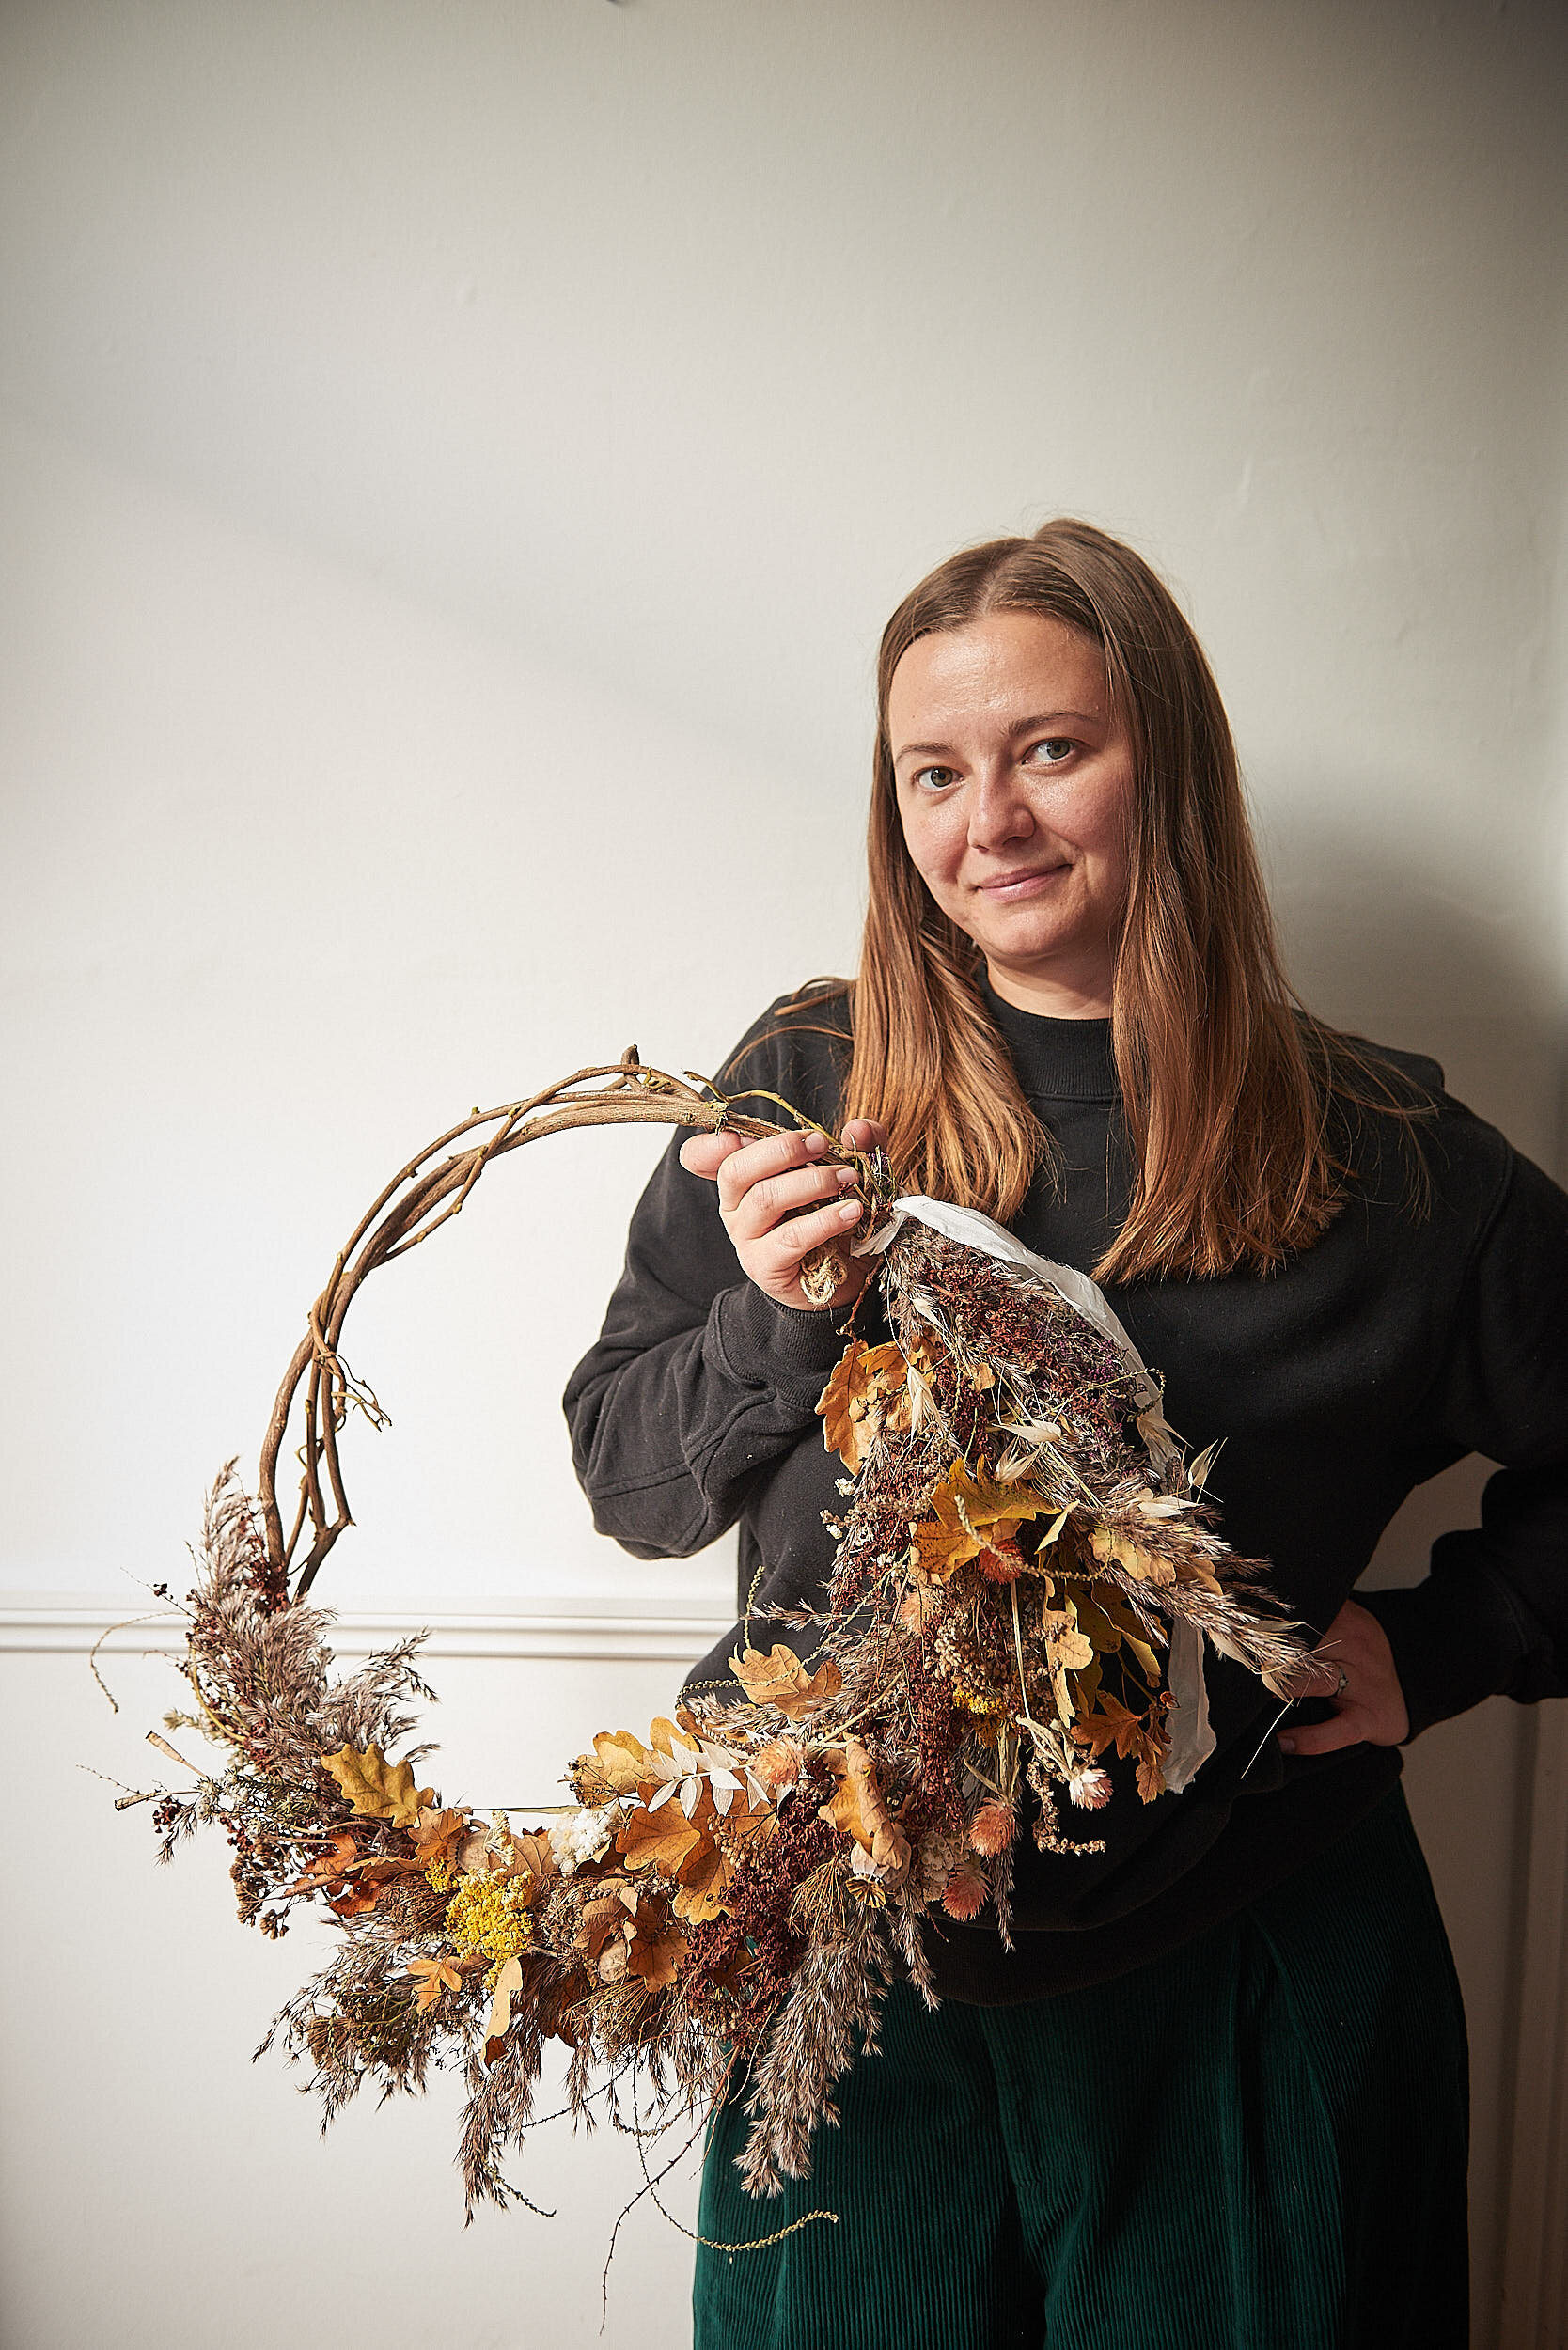 10 wonderful things to make, do and celebrate in October! Hannah is holding a foraged Autumn wreath. It has a hand woven base and is half adorned with beautiful Autumnal  foraged leaves and seed heads.